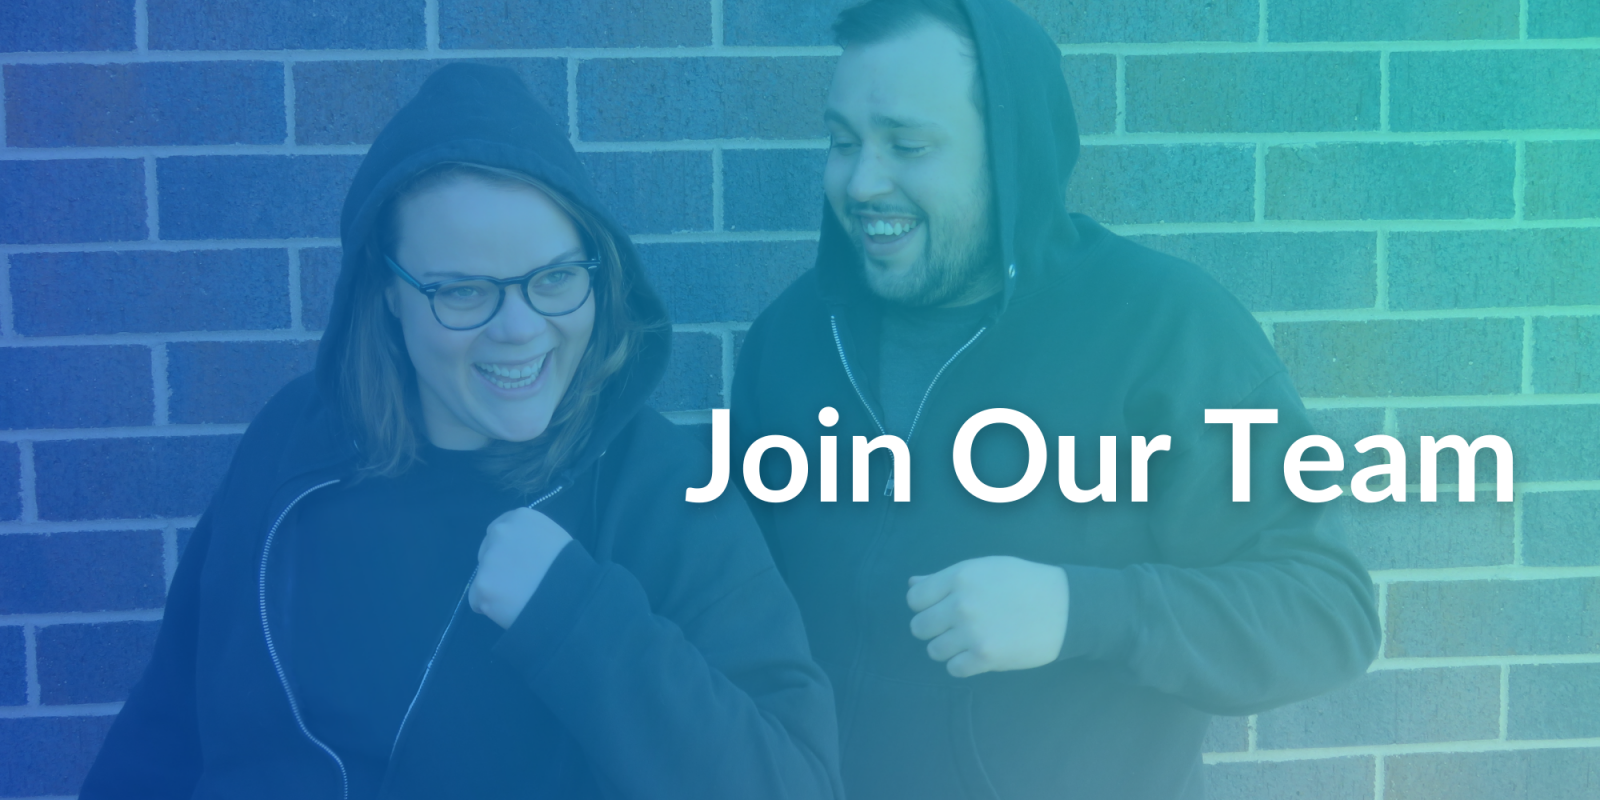 Join Our Team banner showing two people smiling